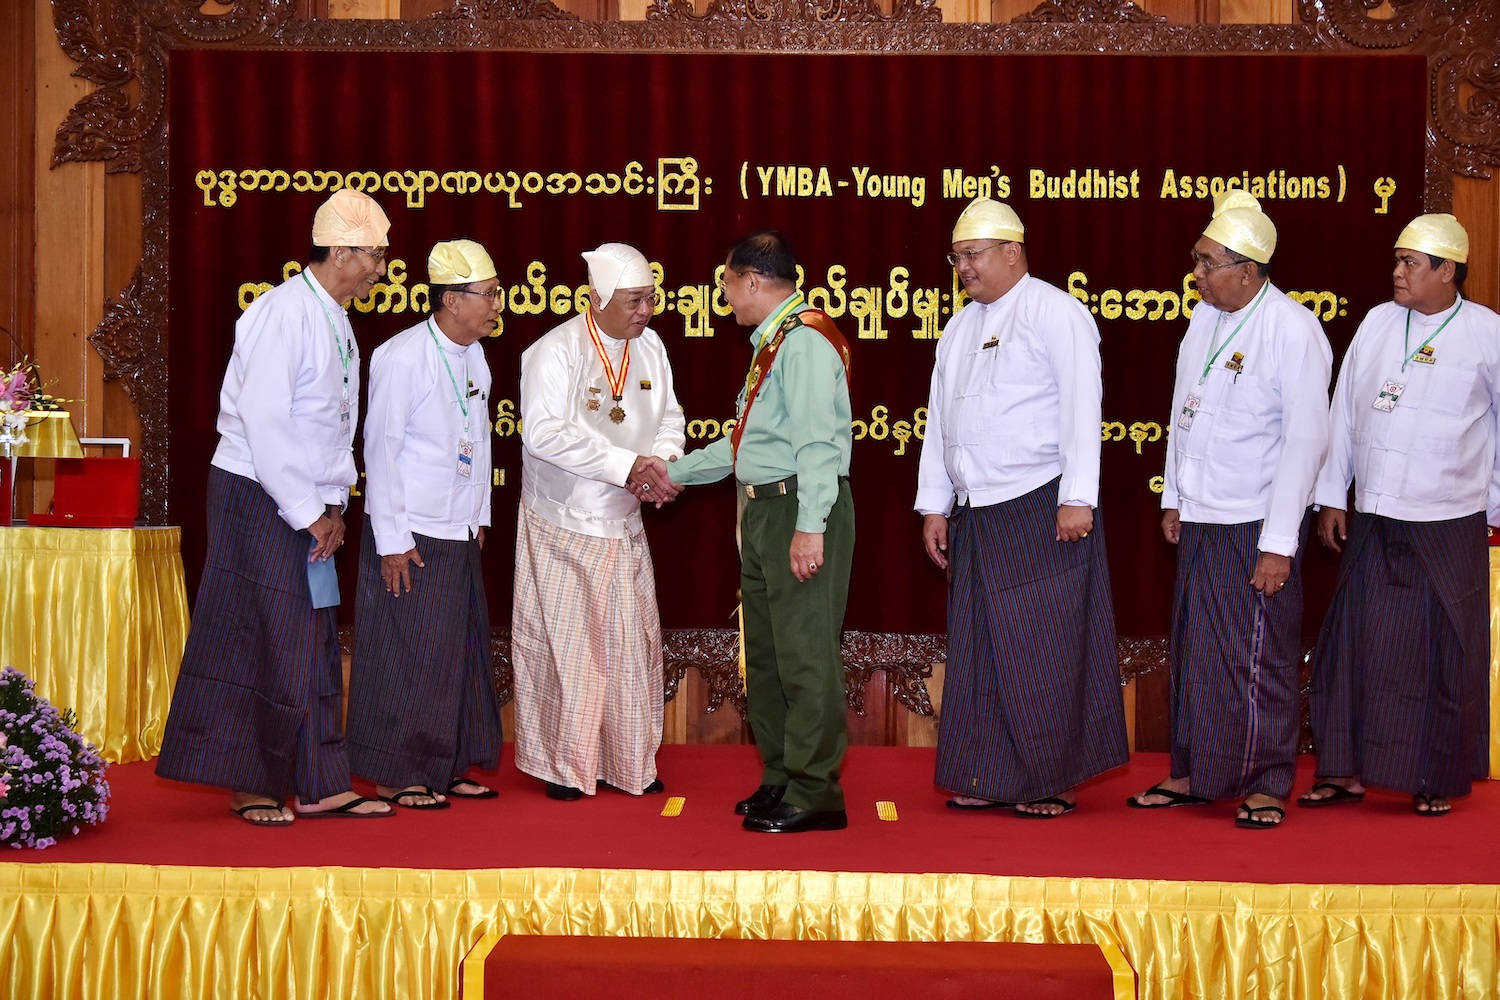 YMBA chair U Ye Htun shakes Senior General Min Aung Hlaing's hand after presenting him with an award and making him the group's patron for life in October 2019. (Supplied | CINDCS)